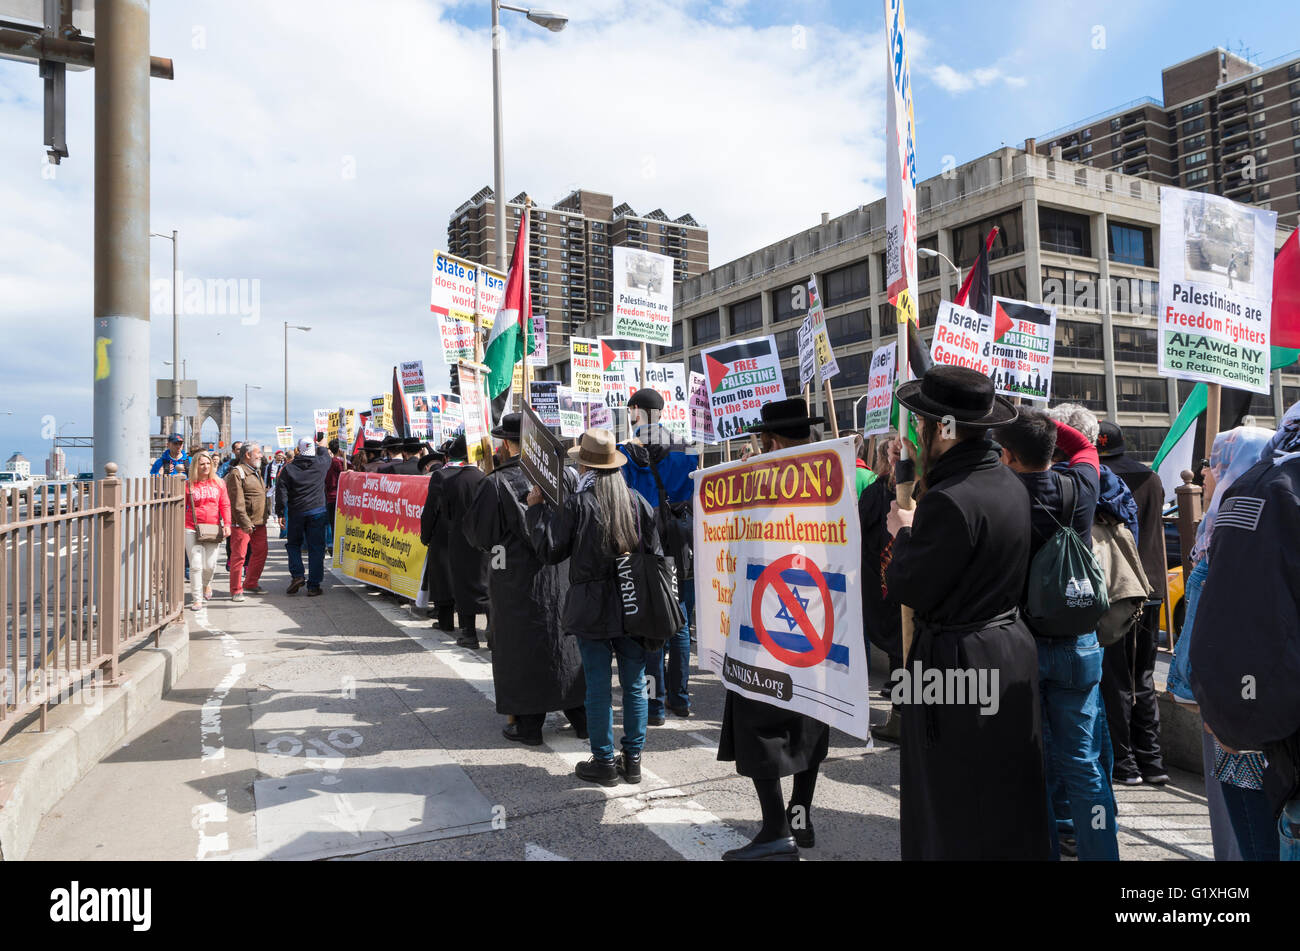 Anti Zionism Orthodox Jews protesting against Israel and Pro-Palestine marching along Brooklyn Bridge, New York, - Stock Image